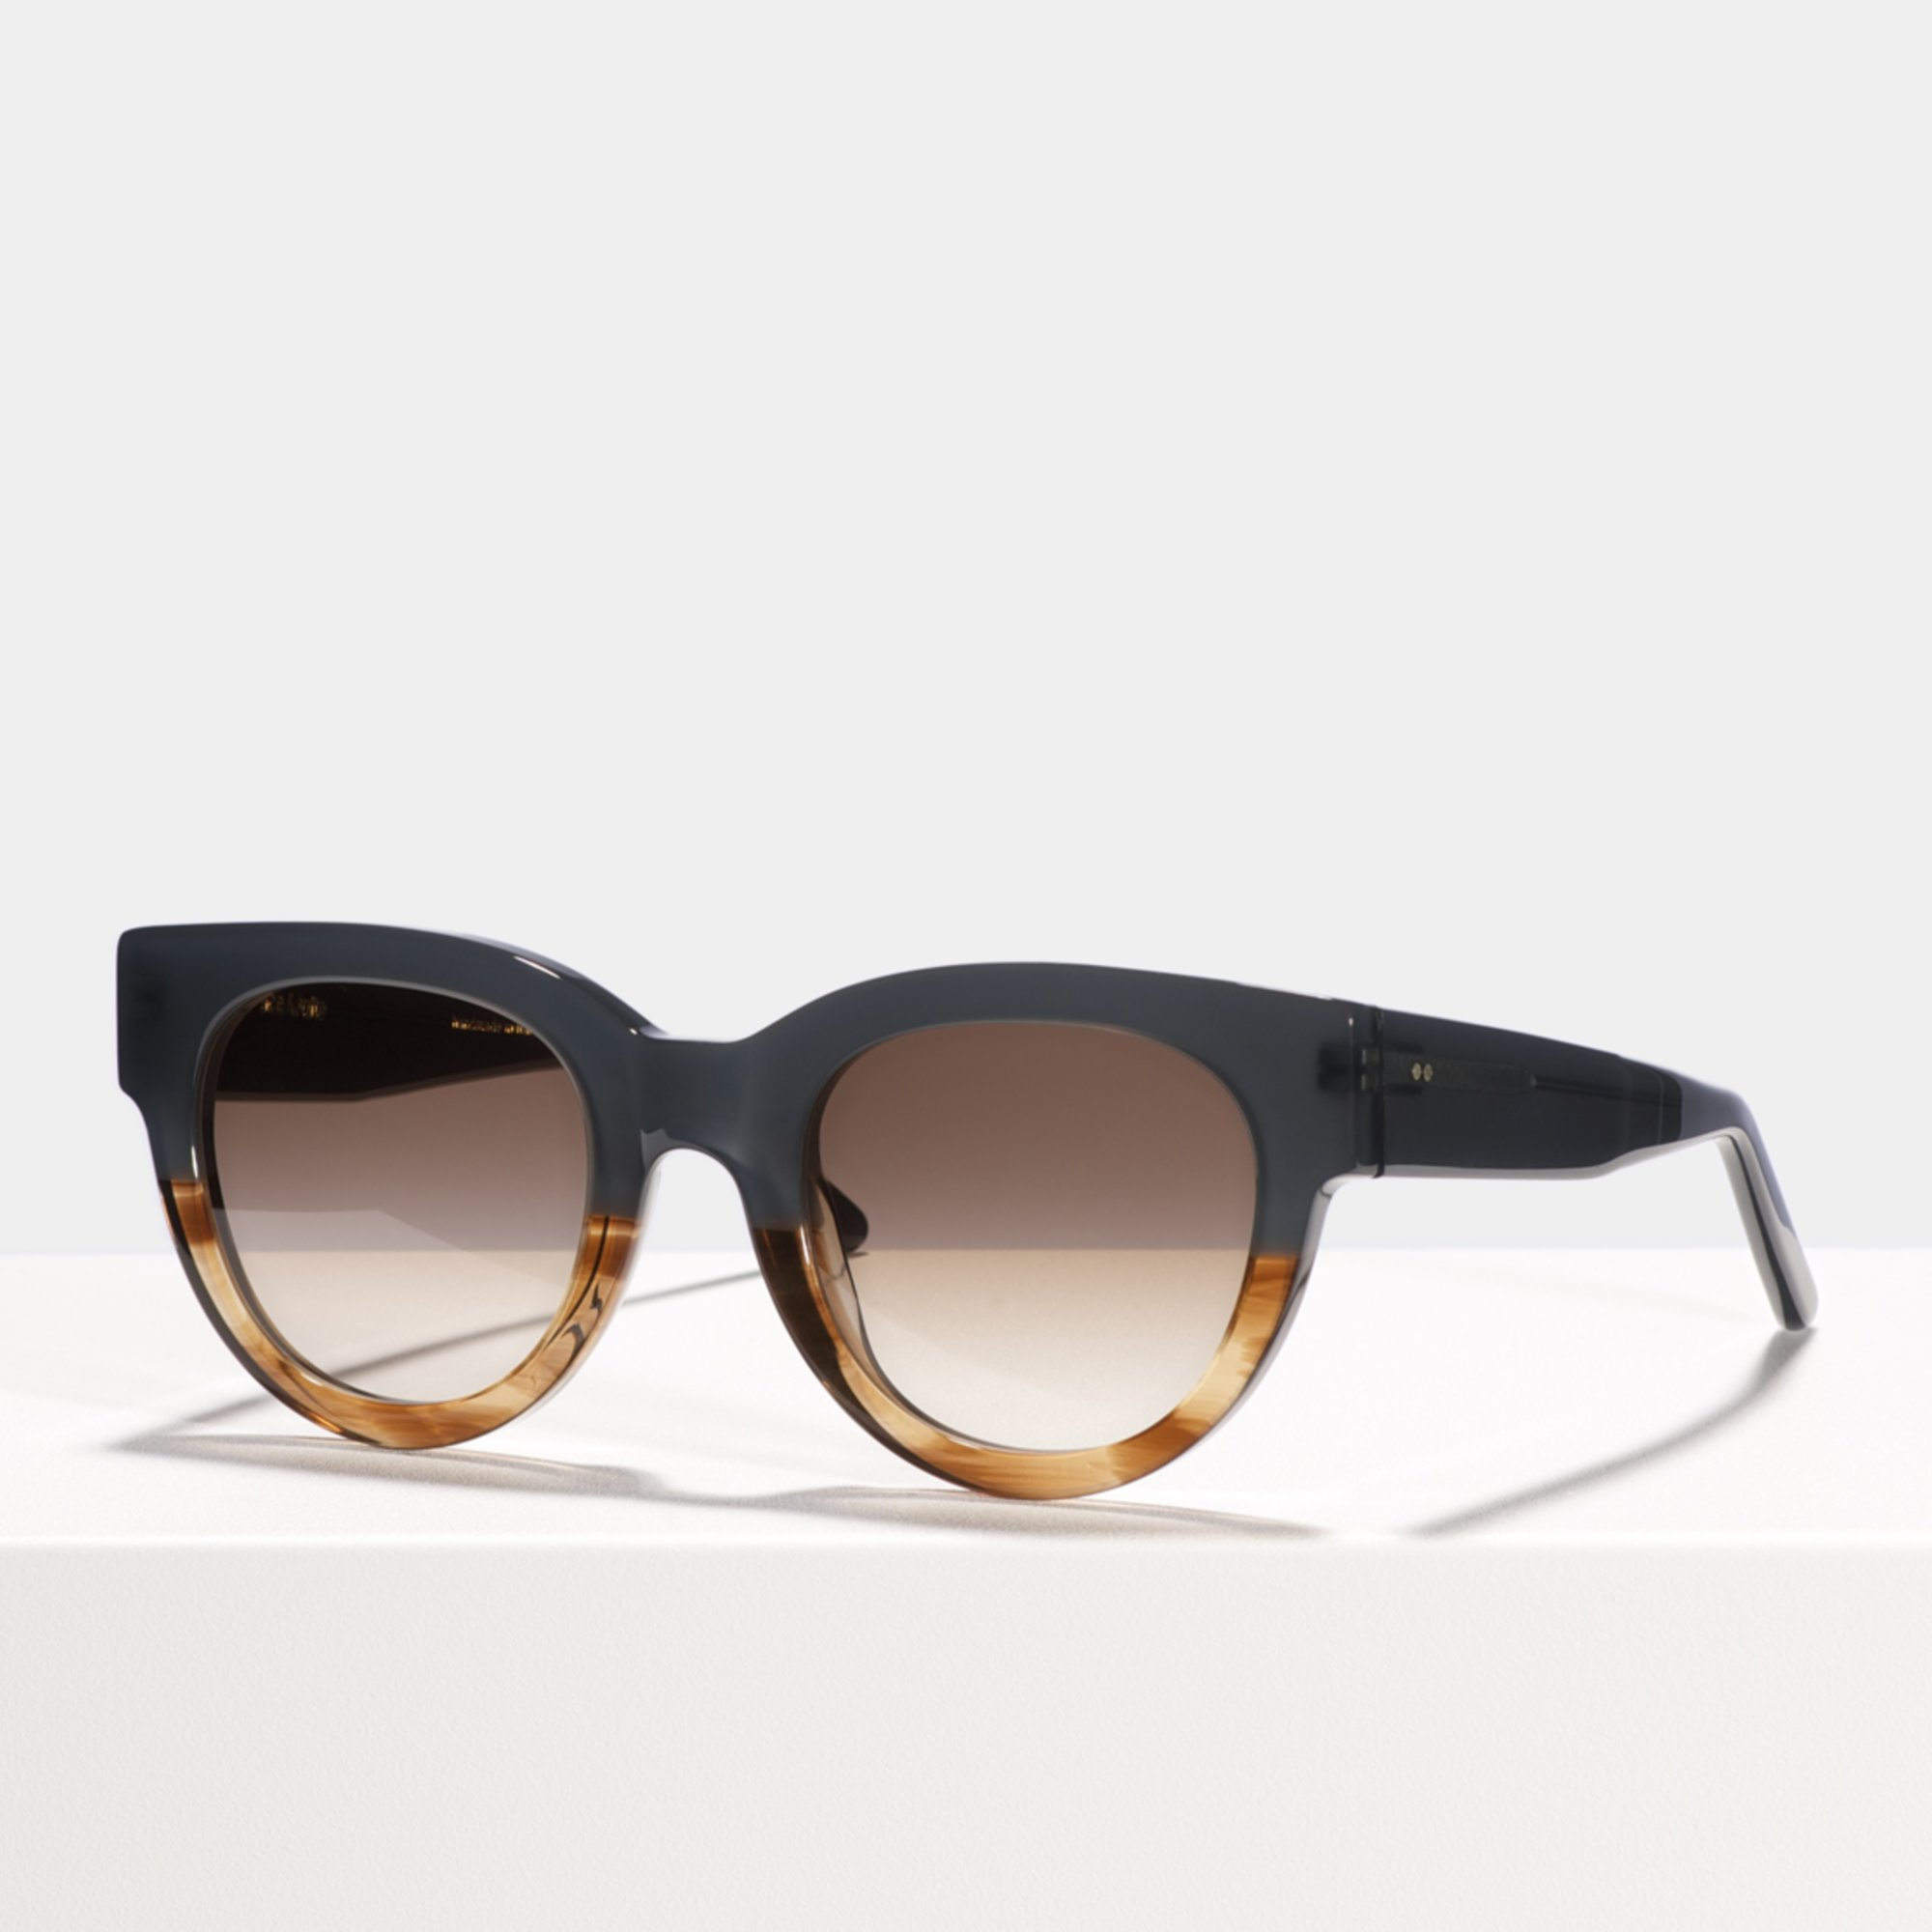 Ace & Tate Sunglasses   round acetate in Brown, Green